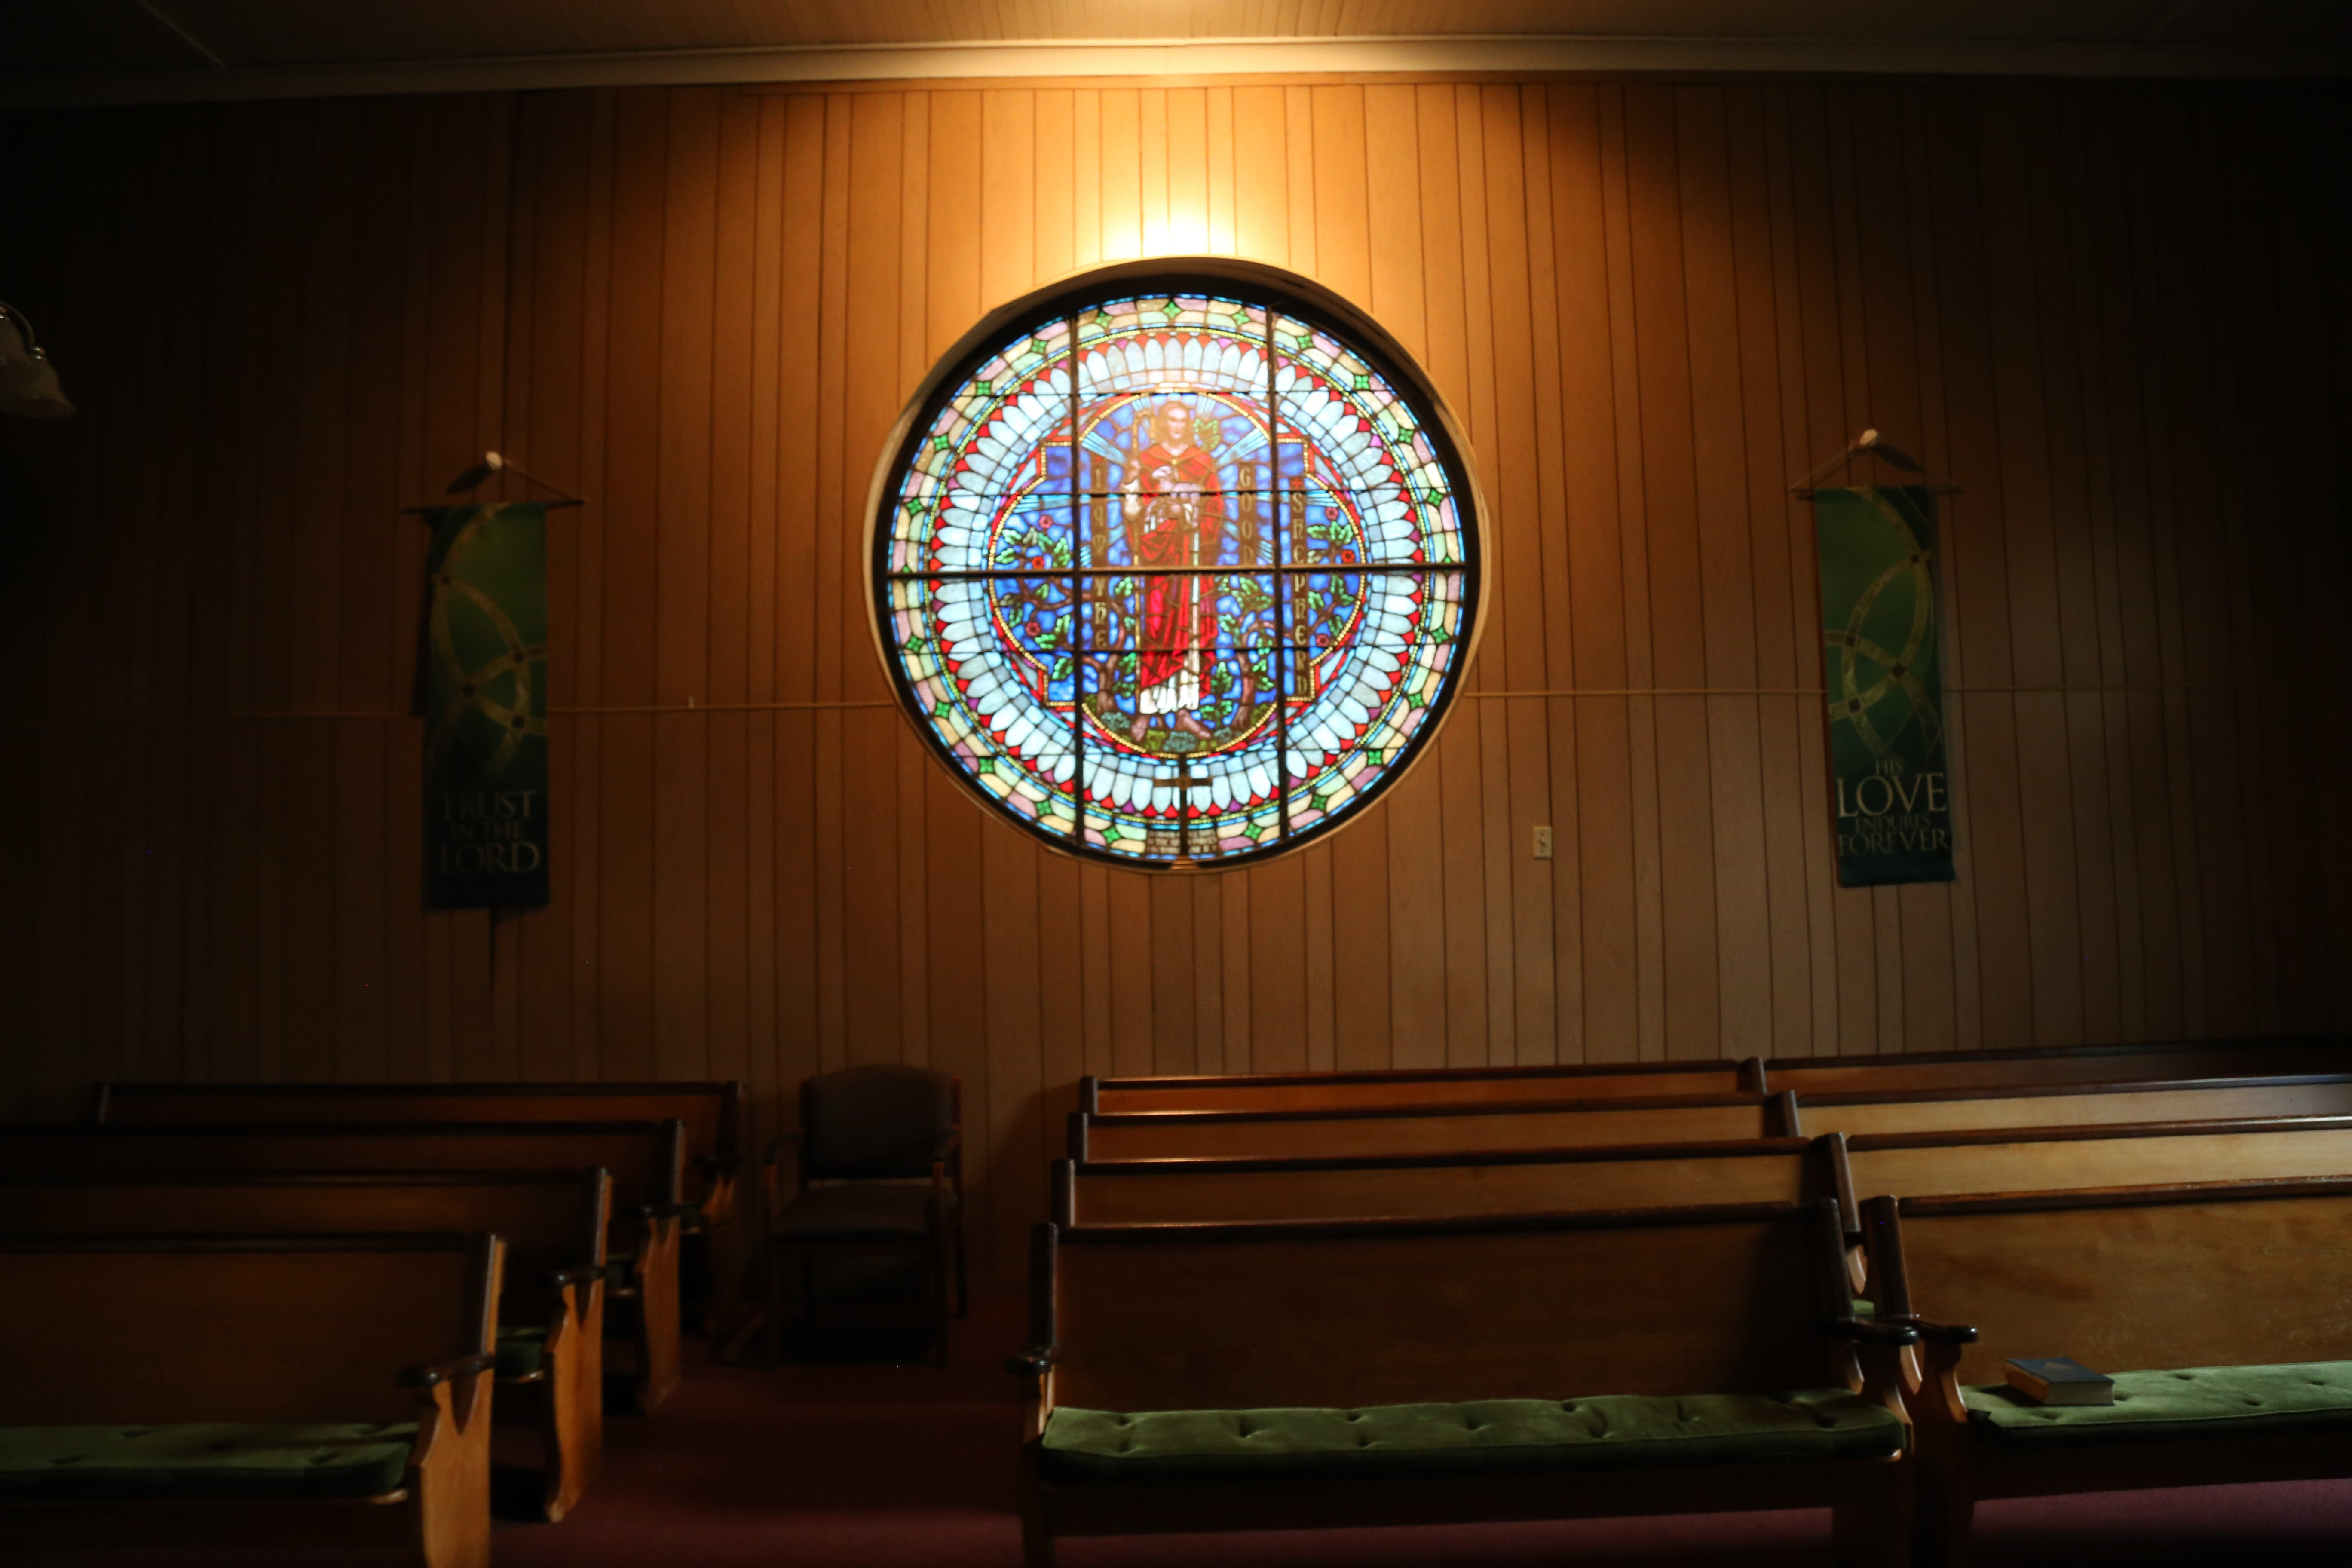 St. James AME Zion Church in Ithaca, N.Y.